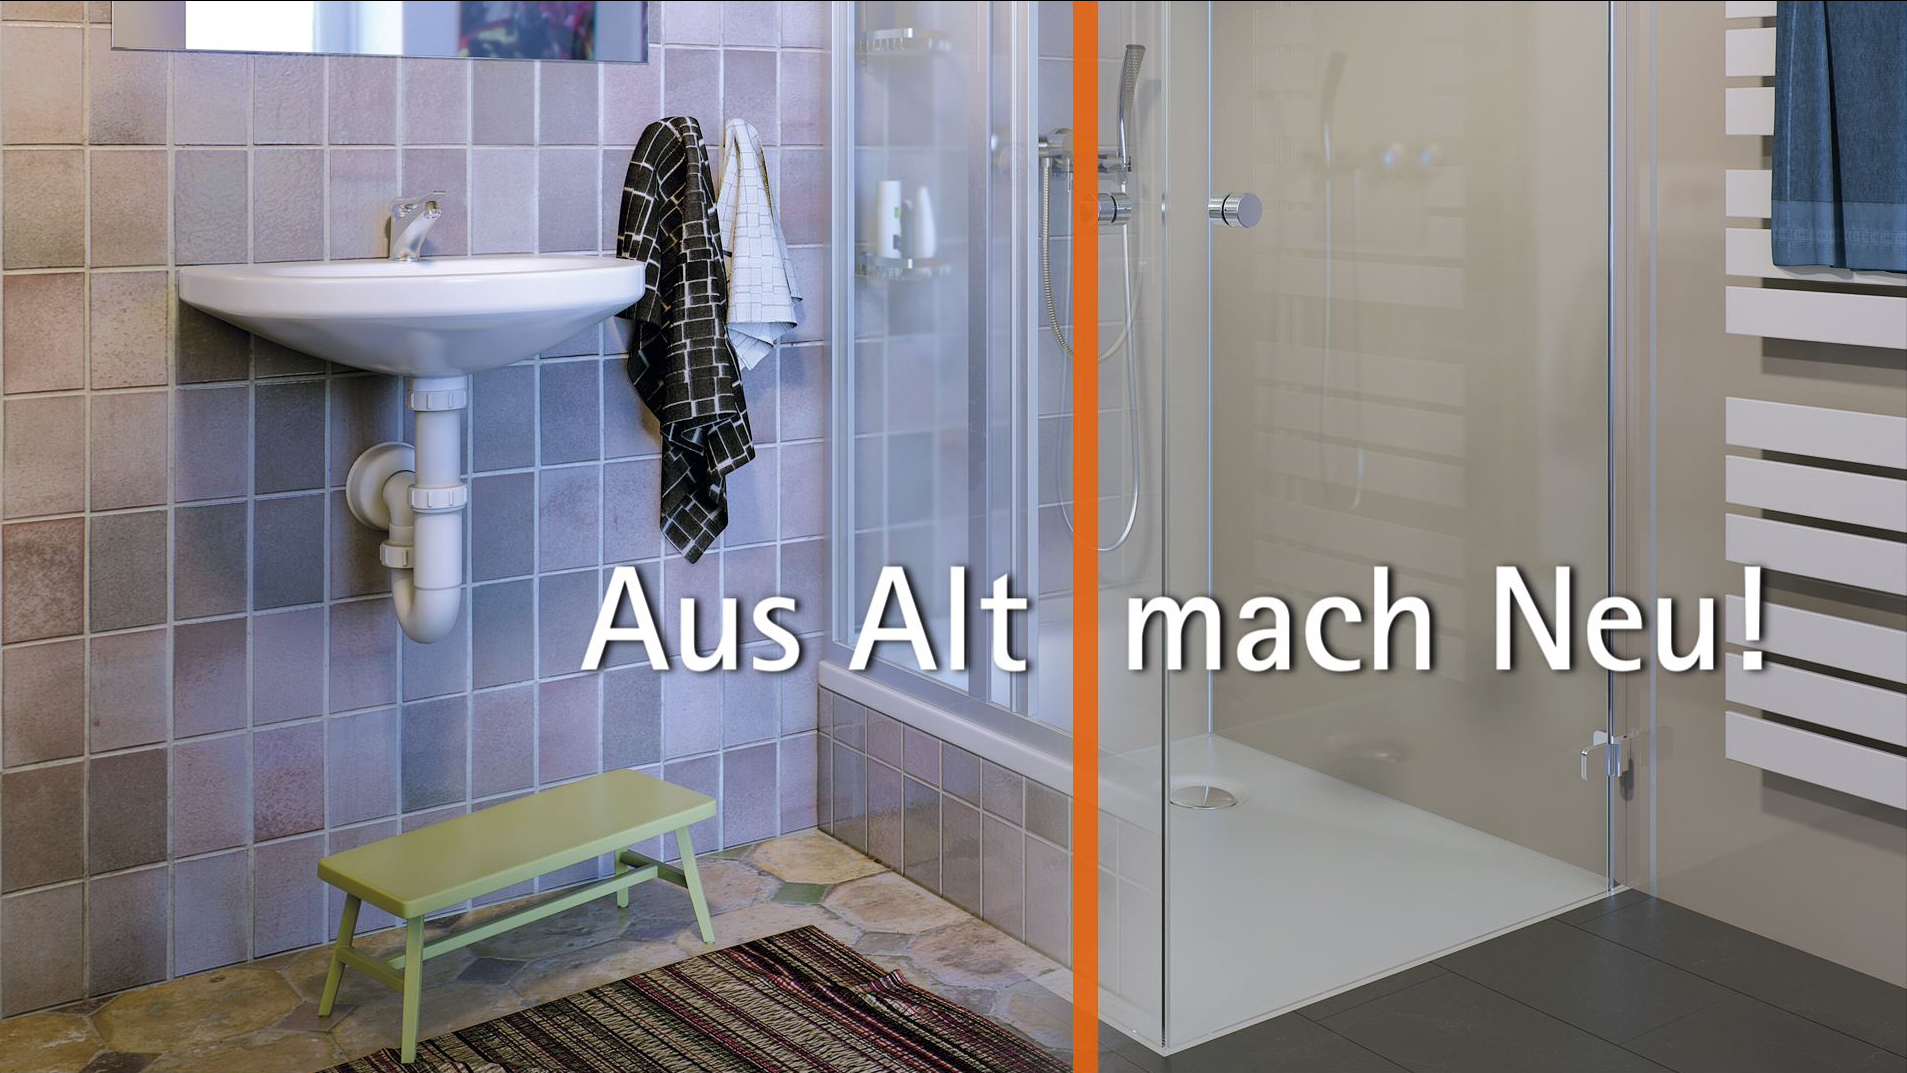 Aus alt mach neu schedel bad design gmbh for Bad aus alt mach neu